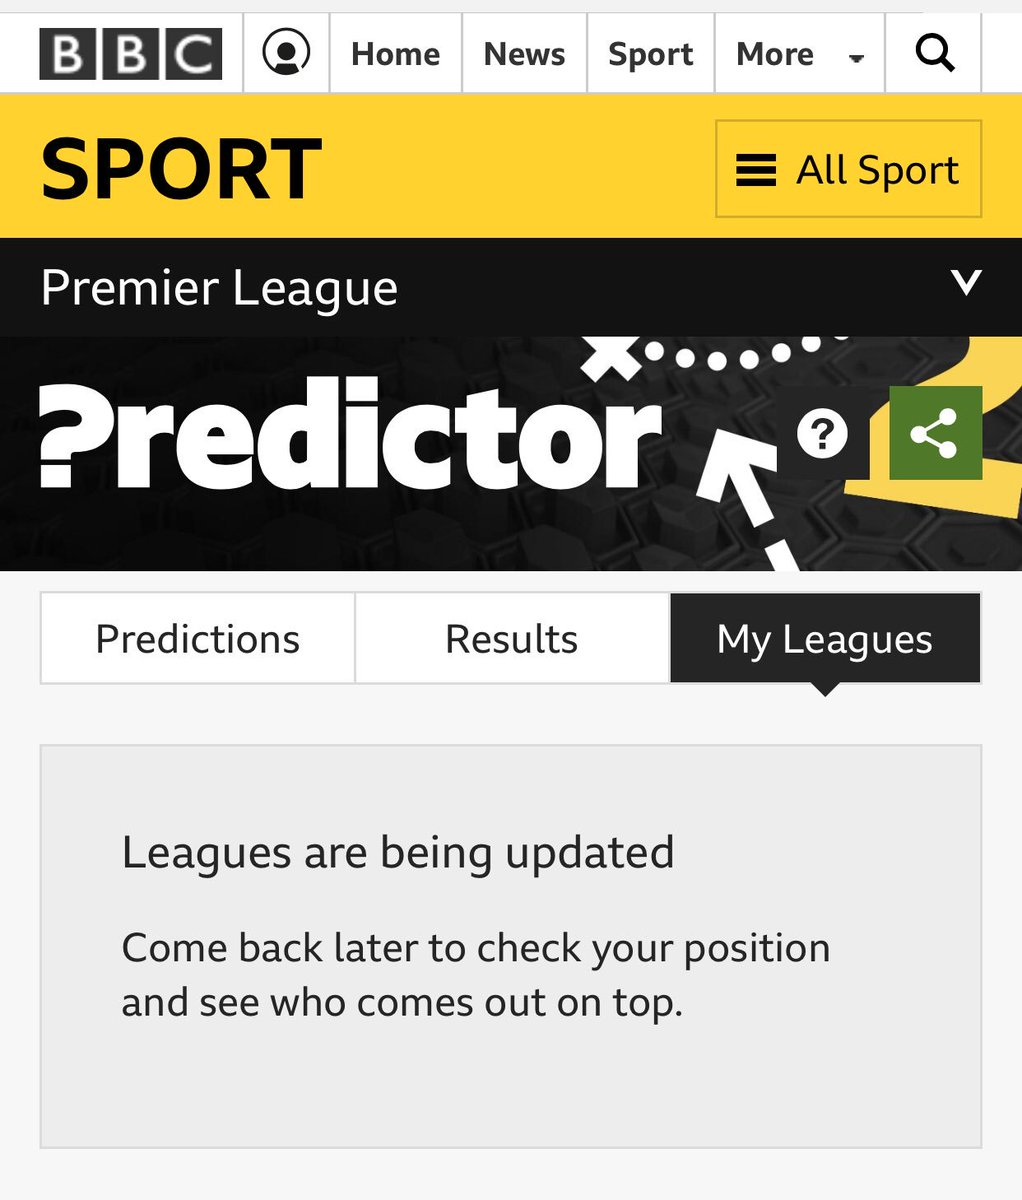 bbcpredictor hashtag on Twitter